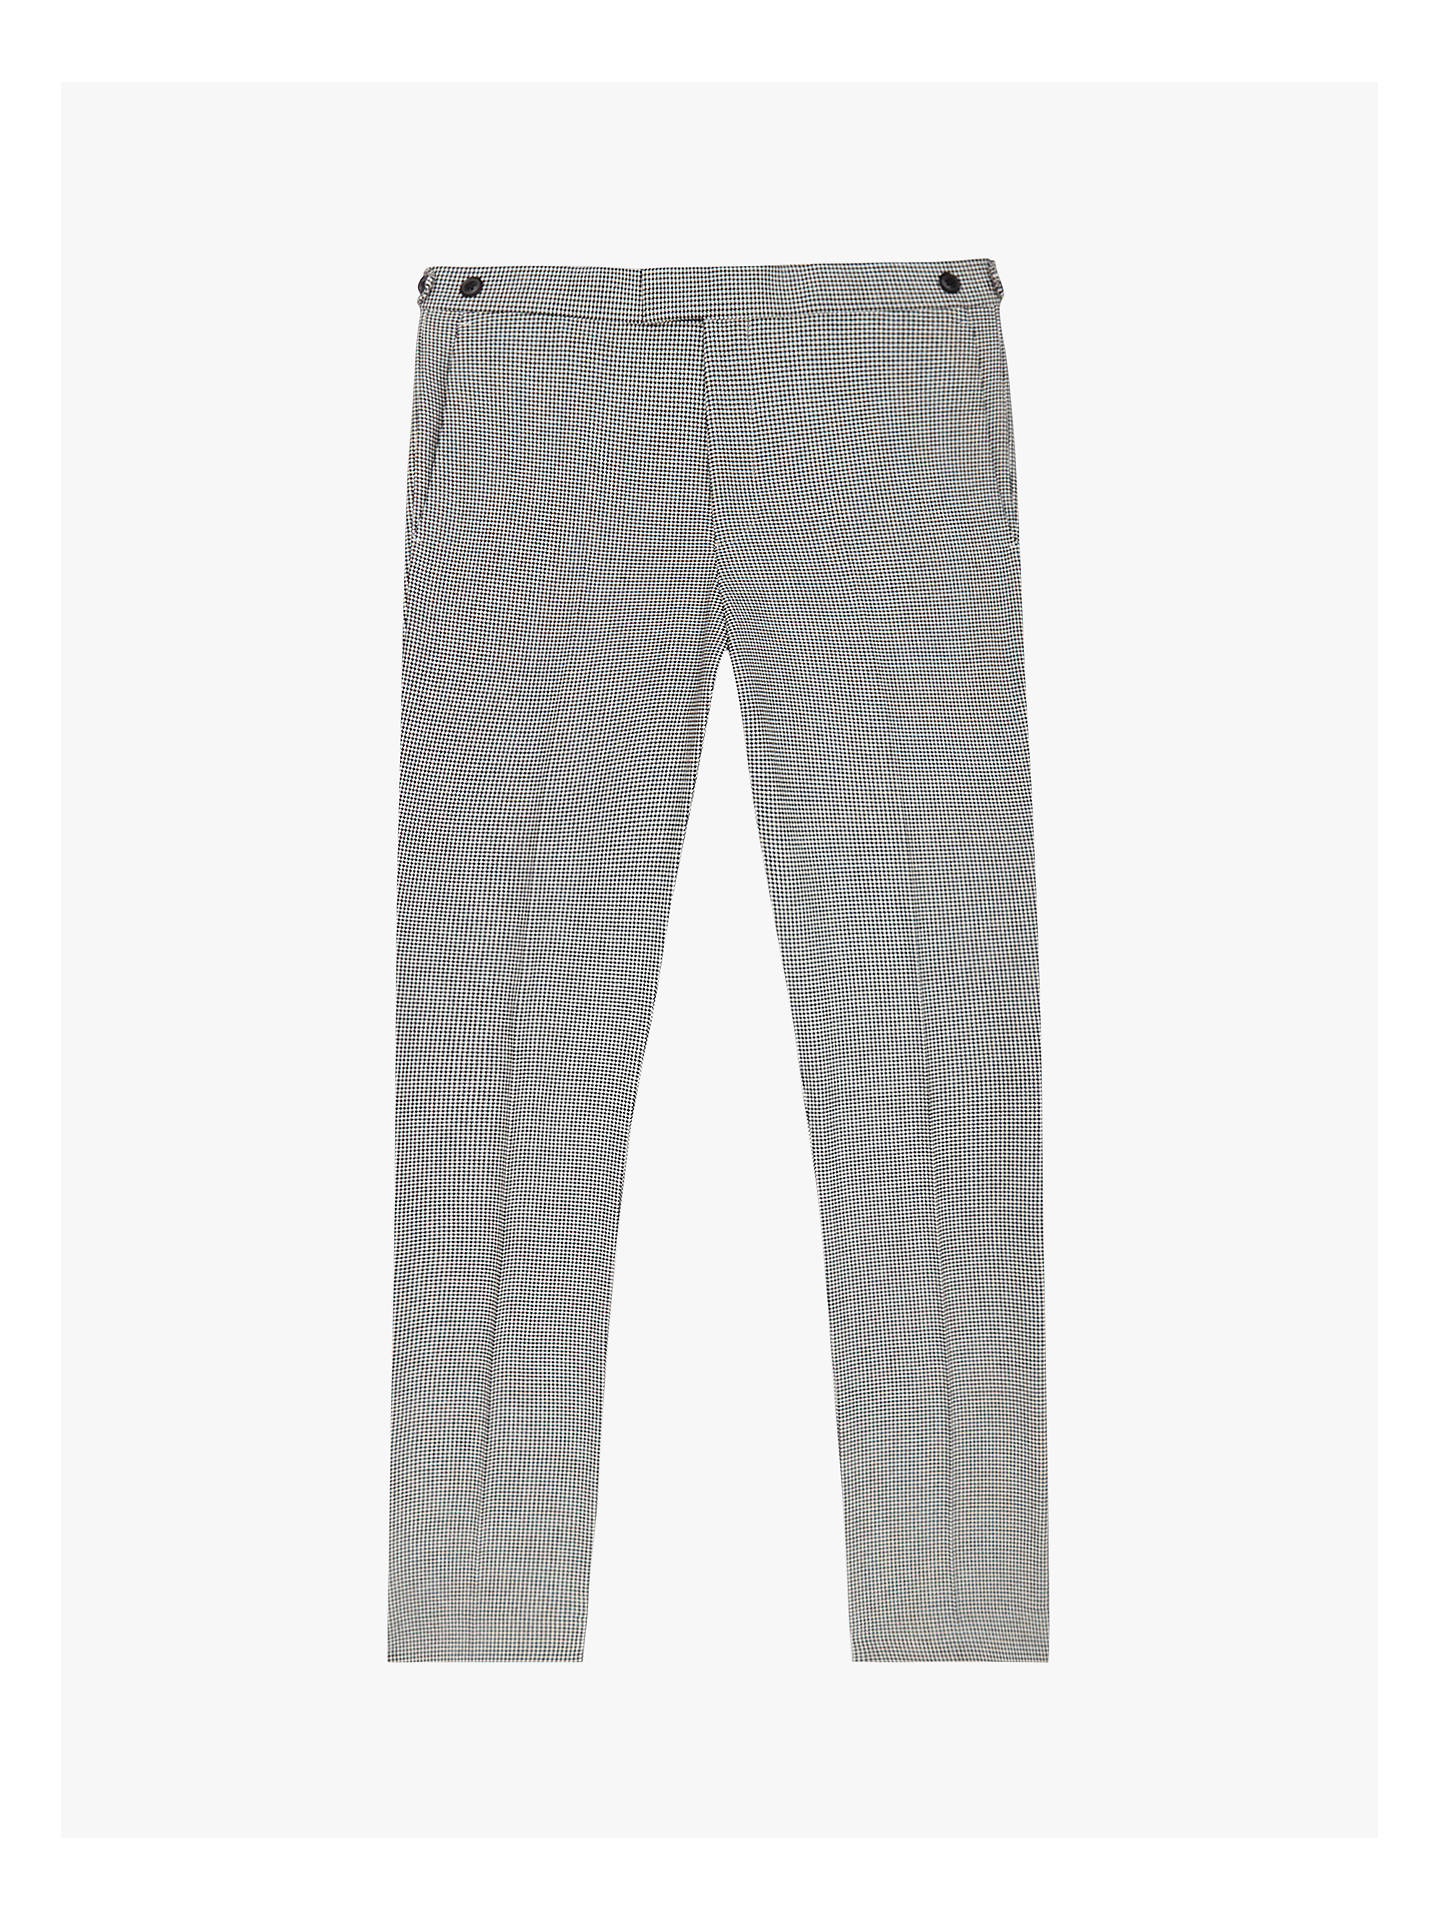 Buy Reiss Napoleon Dogtooth Suit Trousers, Black/White, 28R Online at johnlewis.com